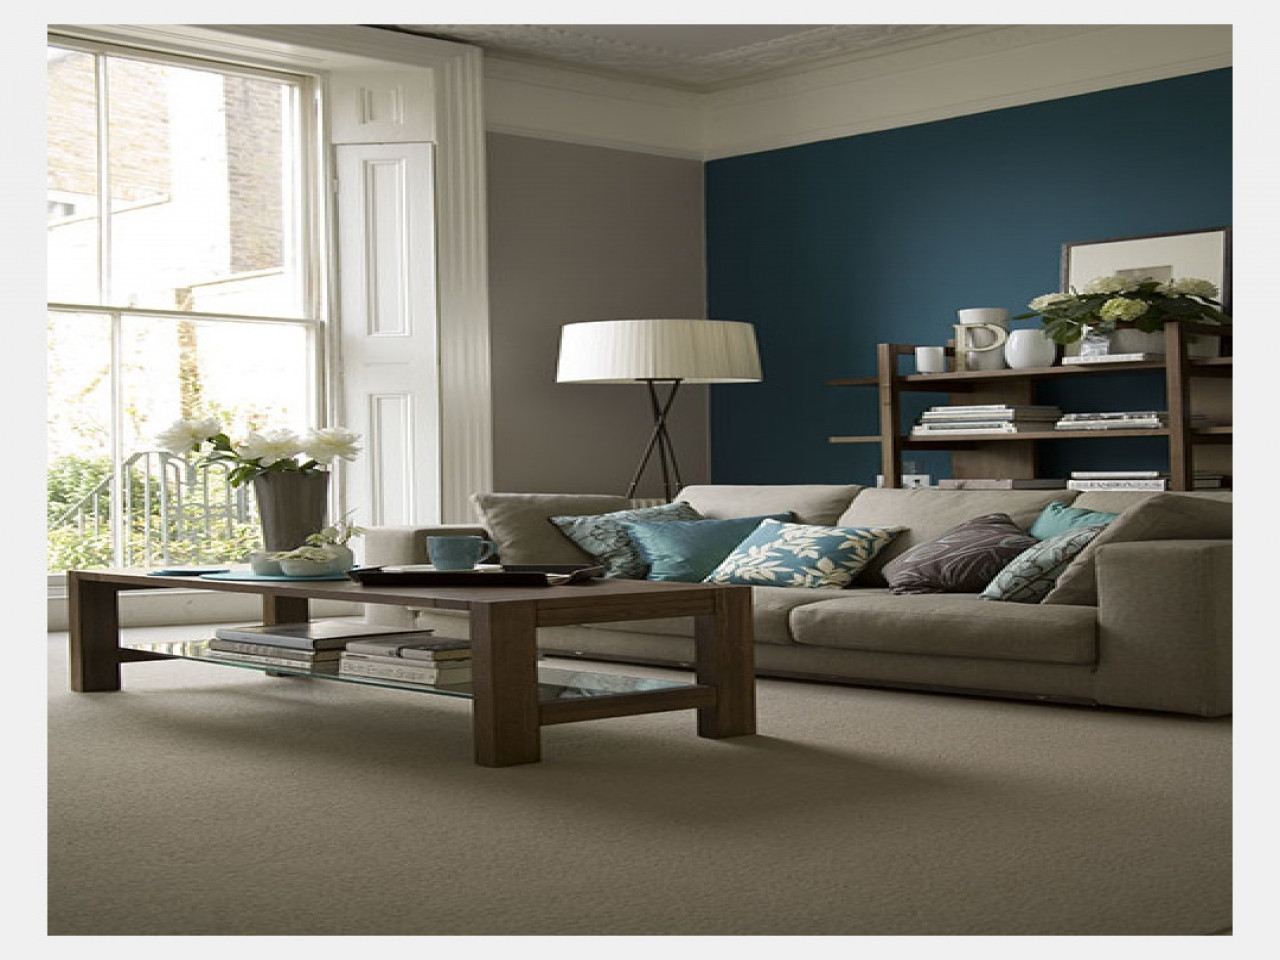 Best ideas about Blue Accent Wall Living Room . Save or Pin Peacock bedrooms yellow grey teal accents grey with blue Now.